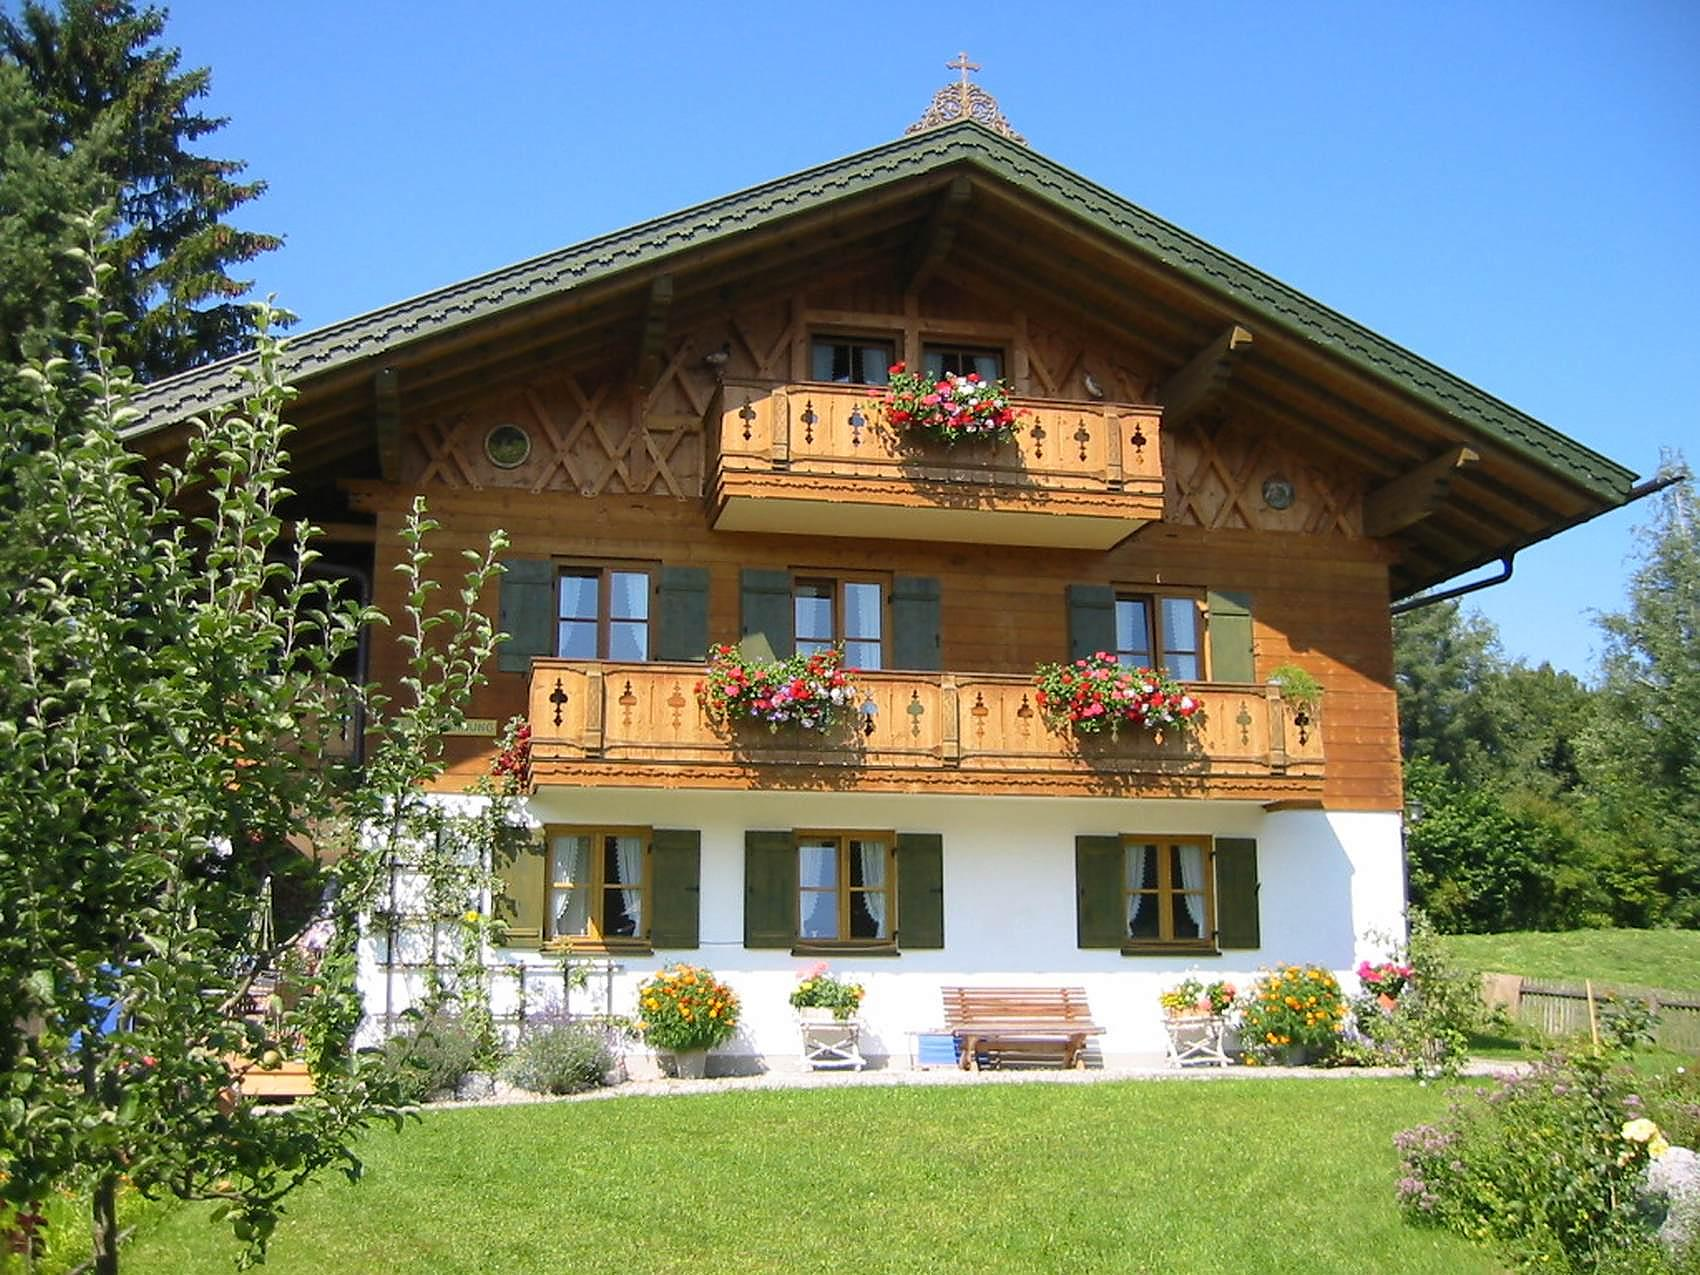 Landhaus Staffelsee in Seehausen am Staffelsee